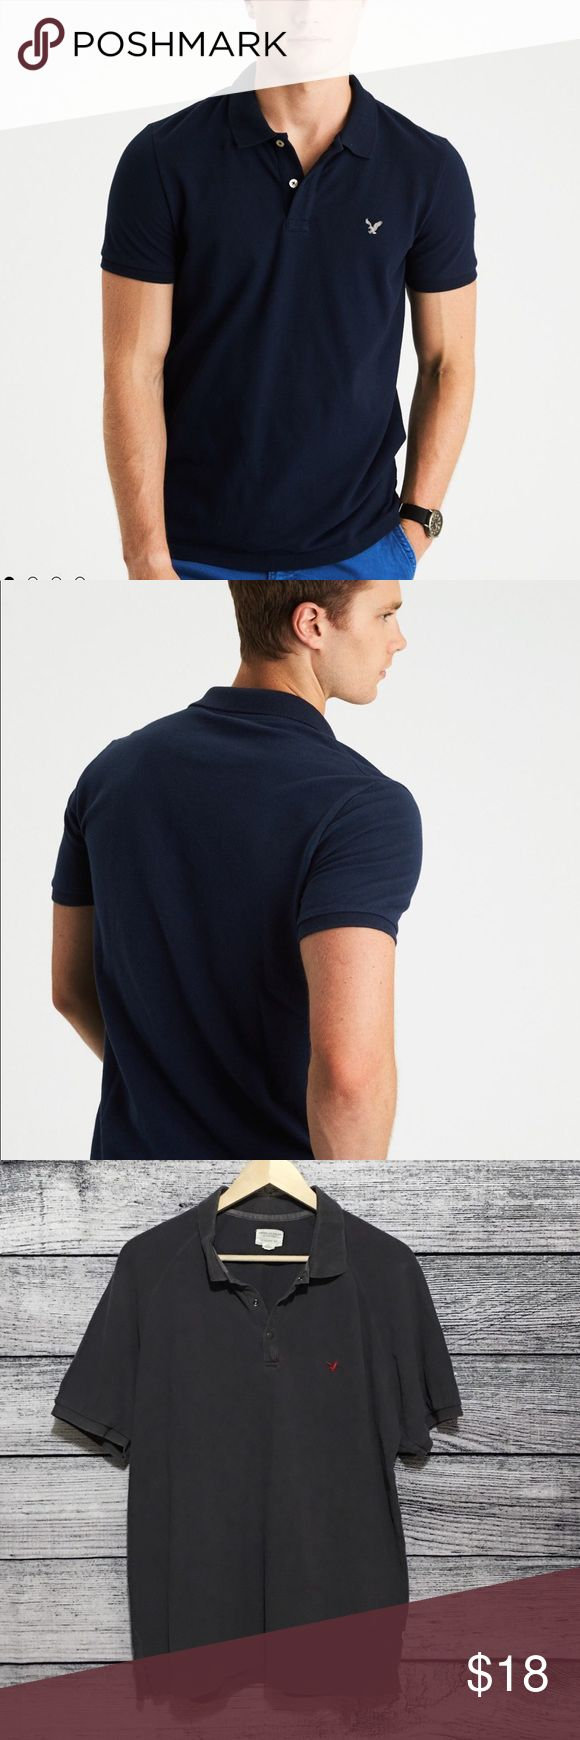 """American Eagle Outfitters Polo. Comfortable & ease of movement Three Snap closure. Rubbed collar & armbands. Vented hem. Embroidered icon on chest. Classic fit. 30"""" length. Chest 22.5 approximately. No trades, offers welcome.0919 American Eagle Outfitters Shirts Polos"""